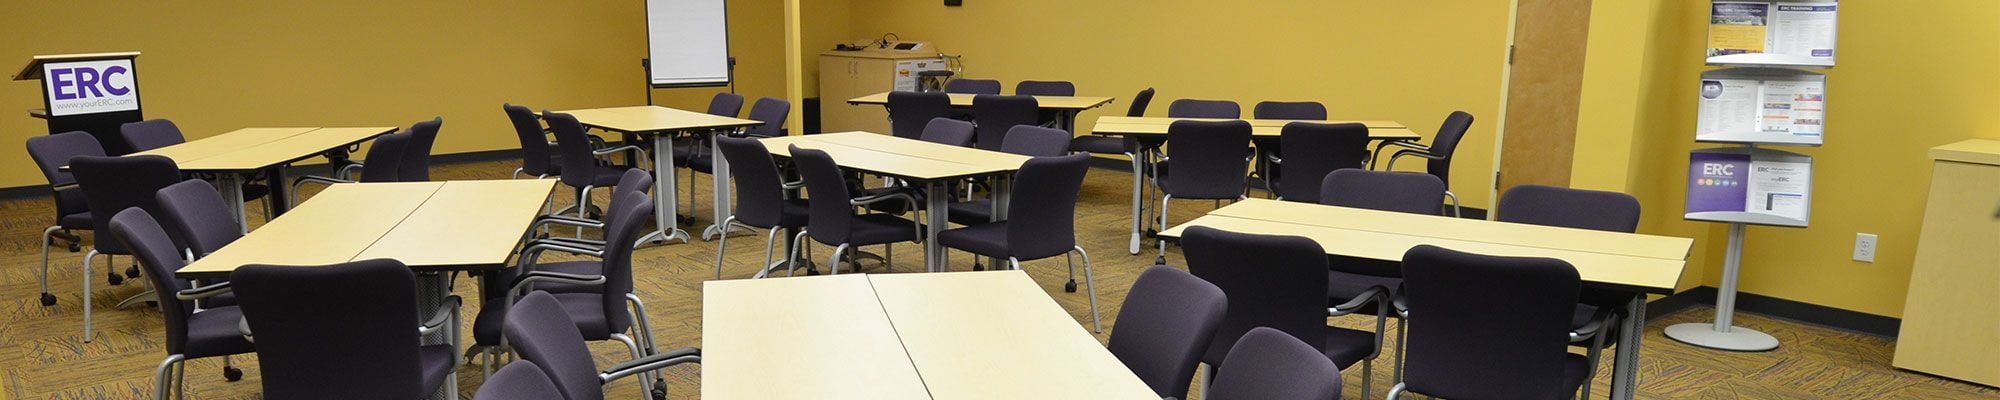 Tips for Attending Training at ERC